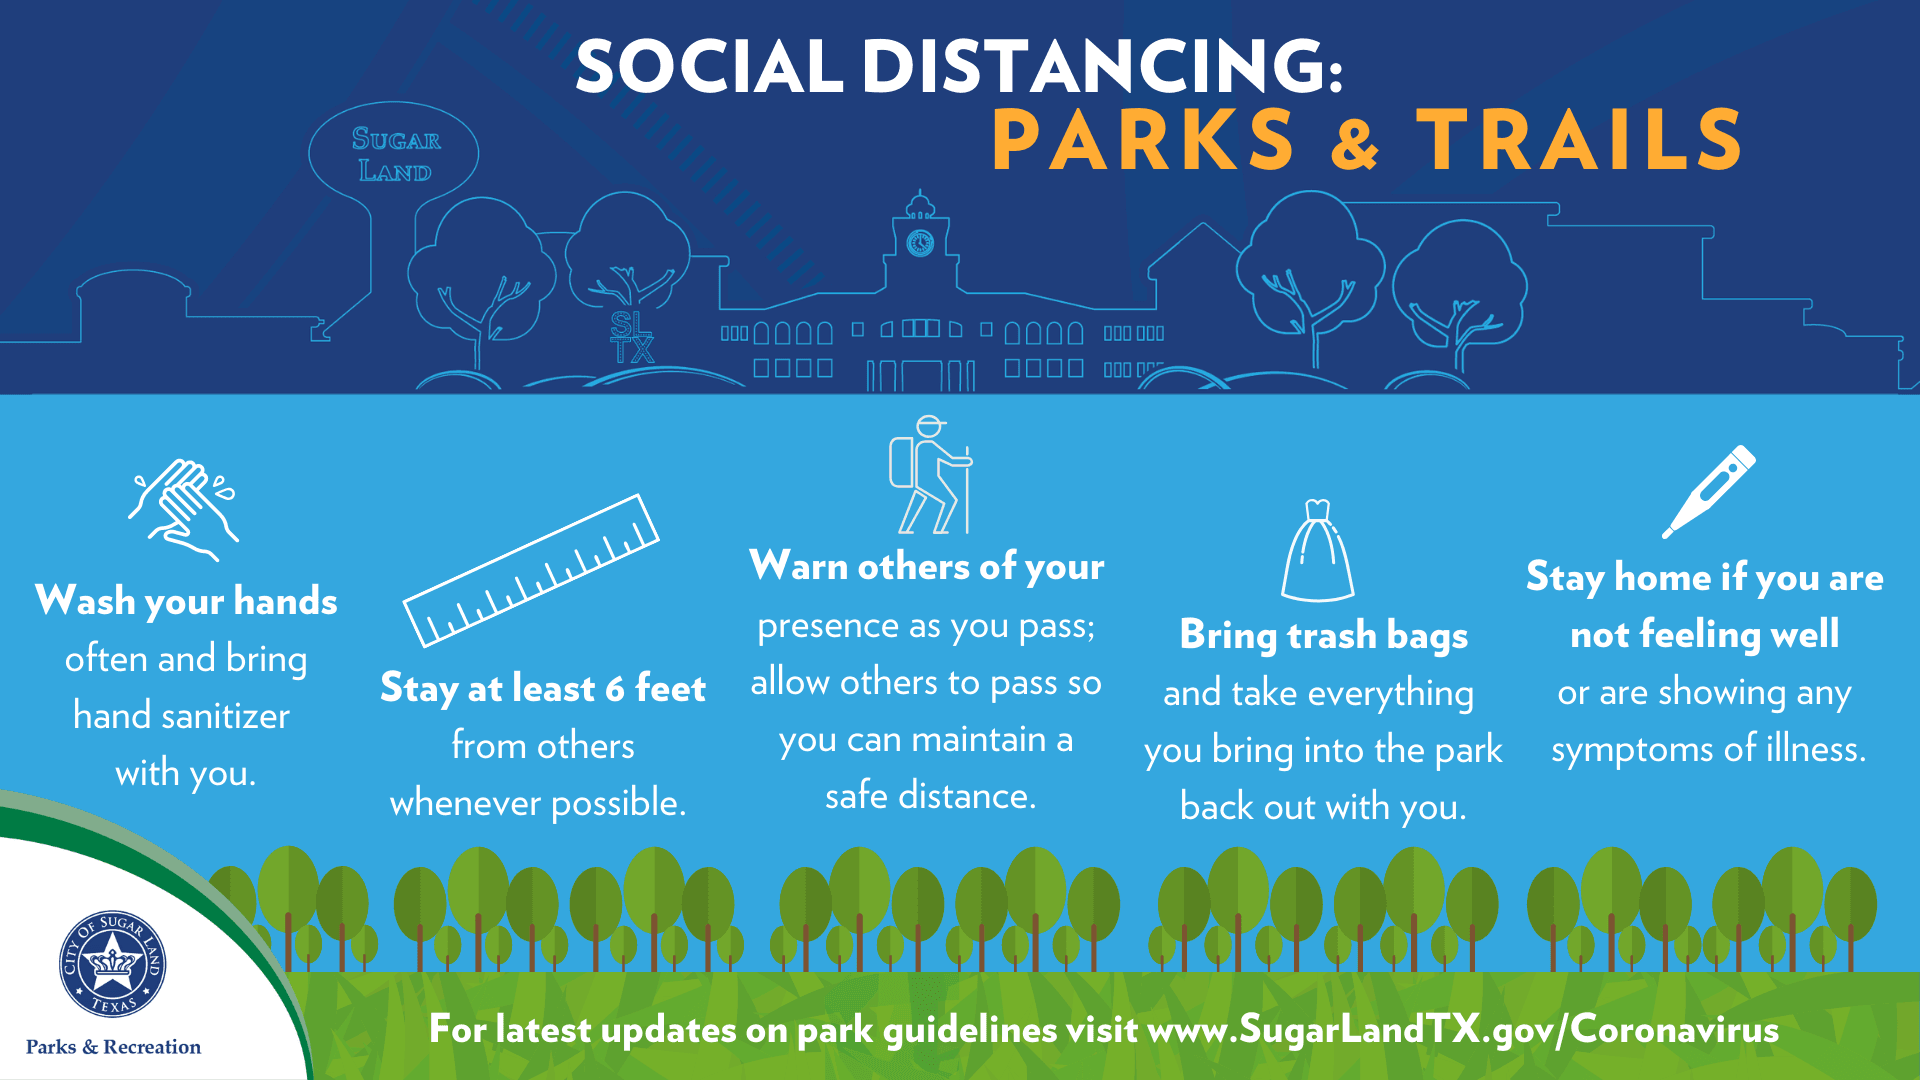 Social Distancing in Parks